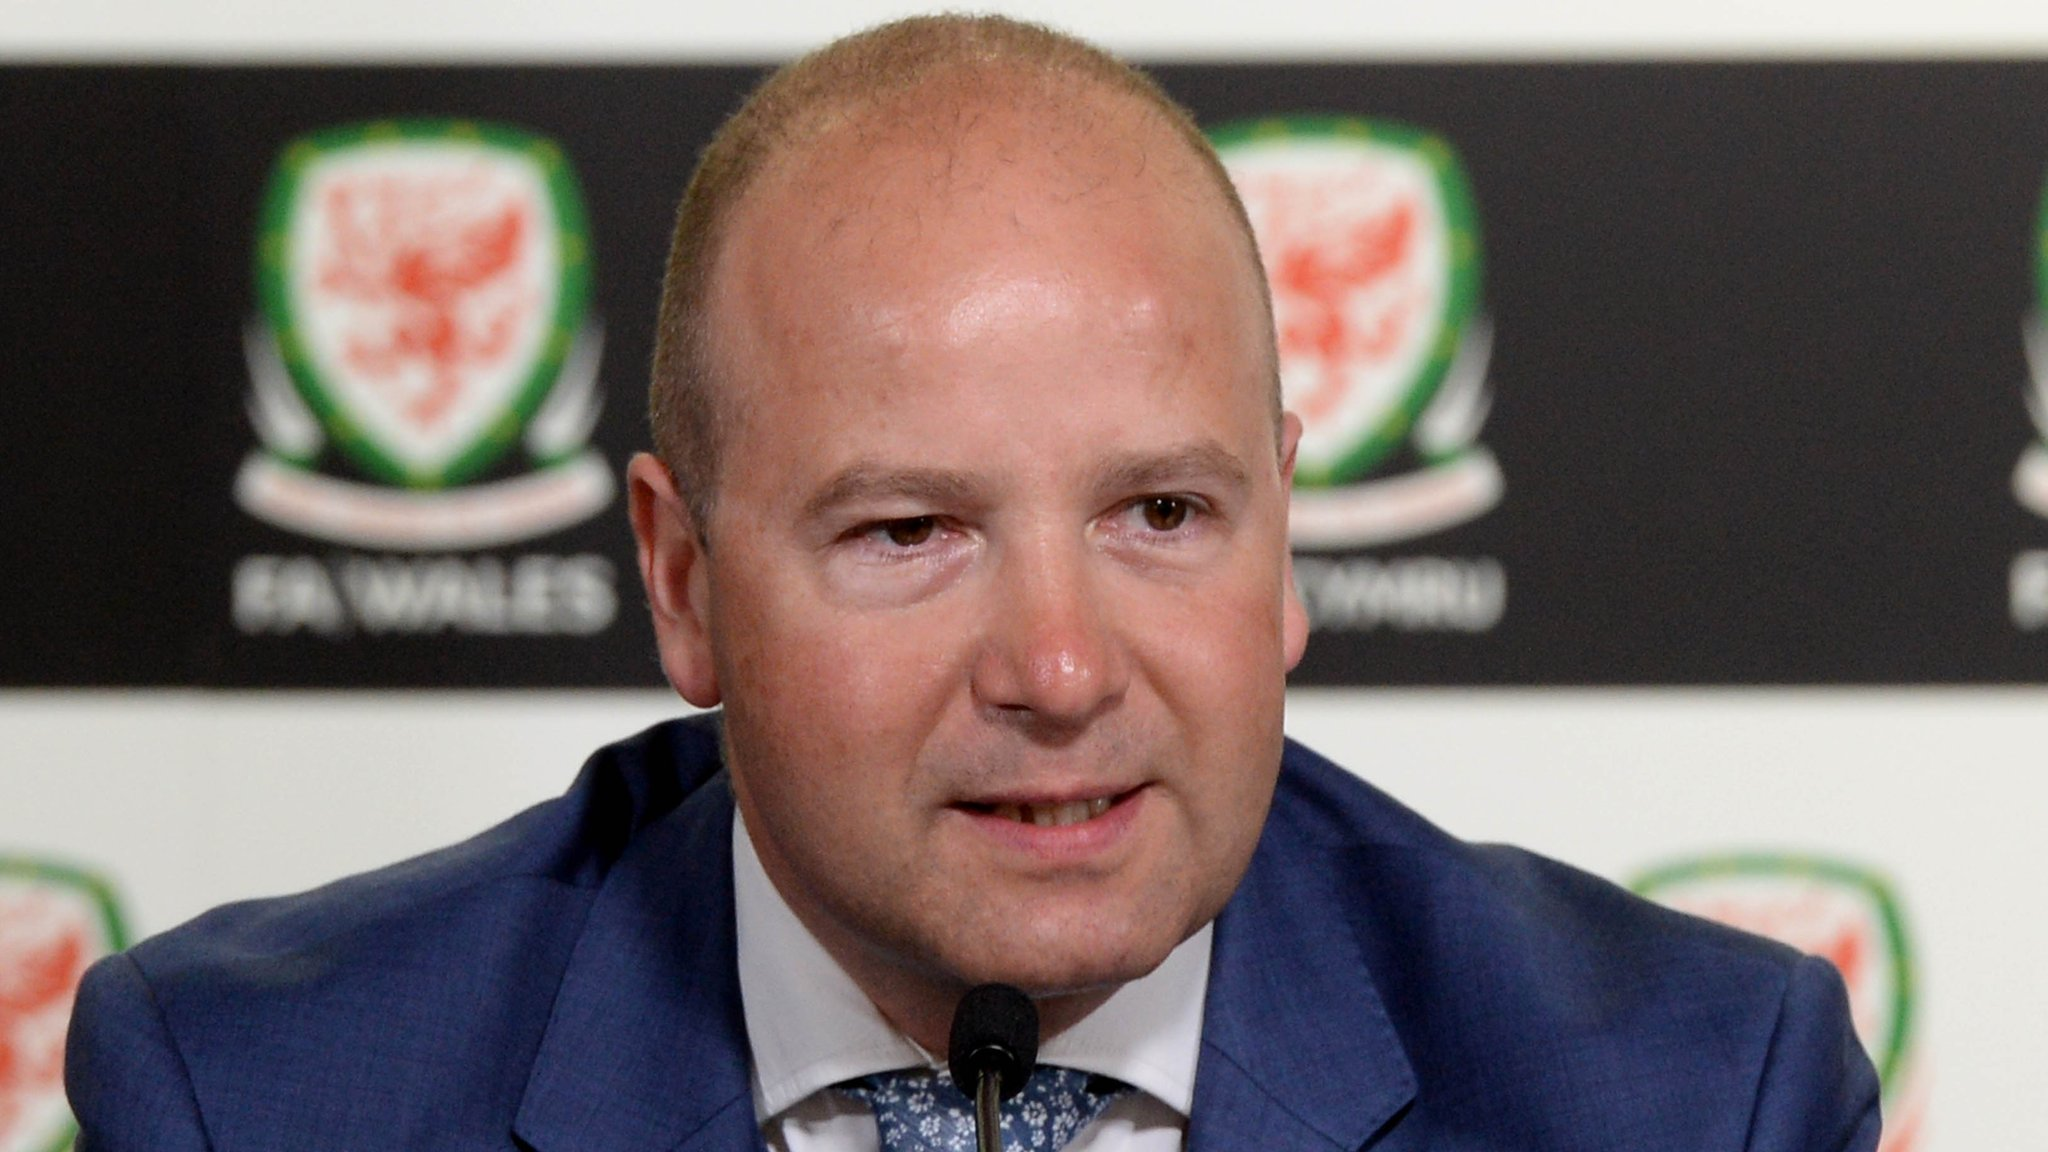 Wales football chief faces investigation over next manager 'definitely not English' comment